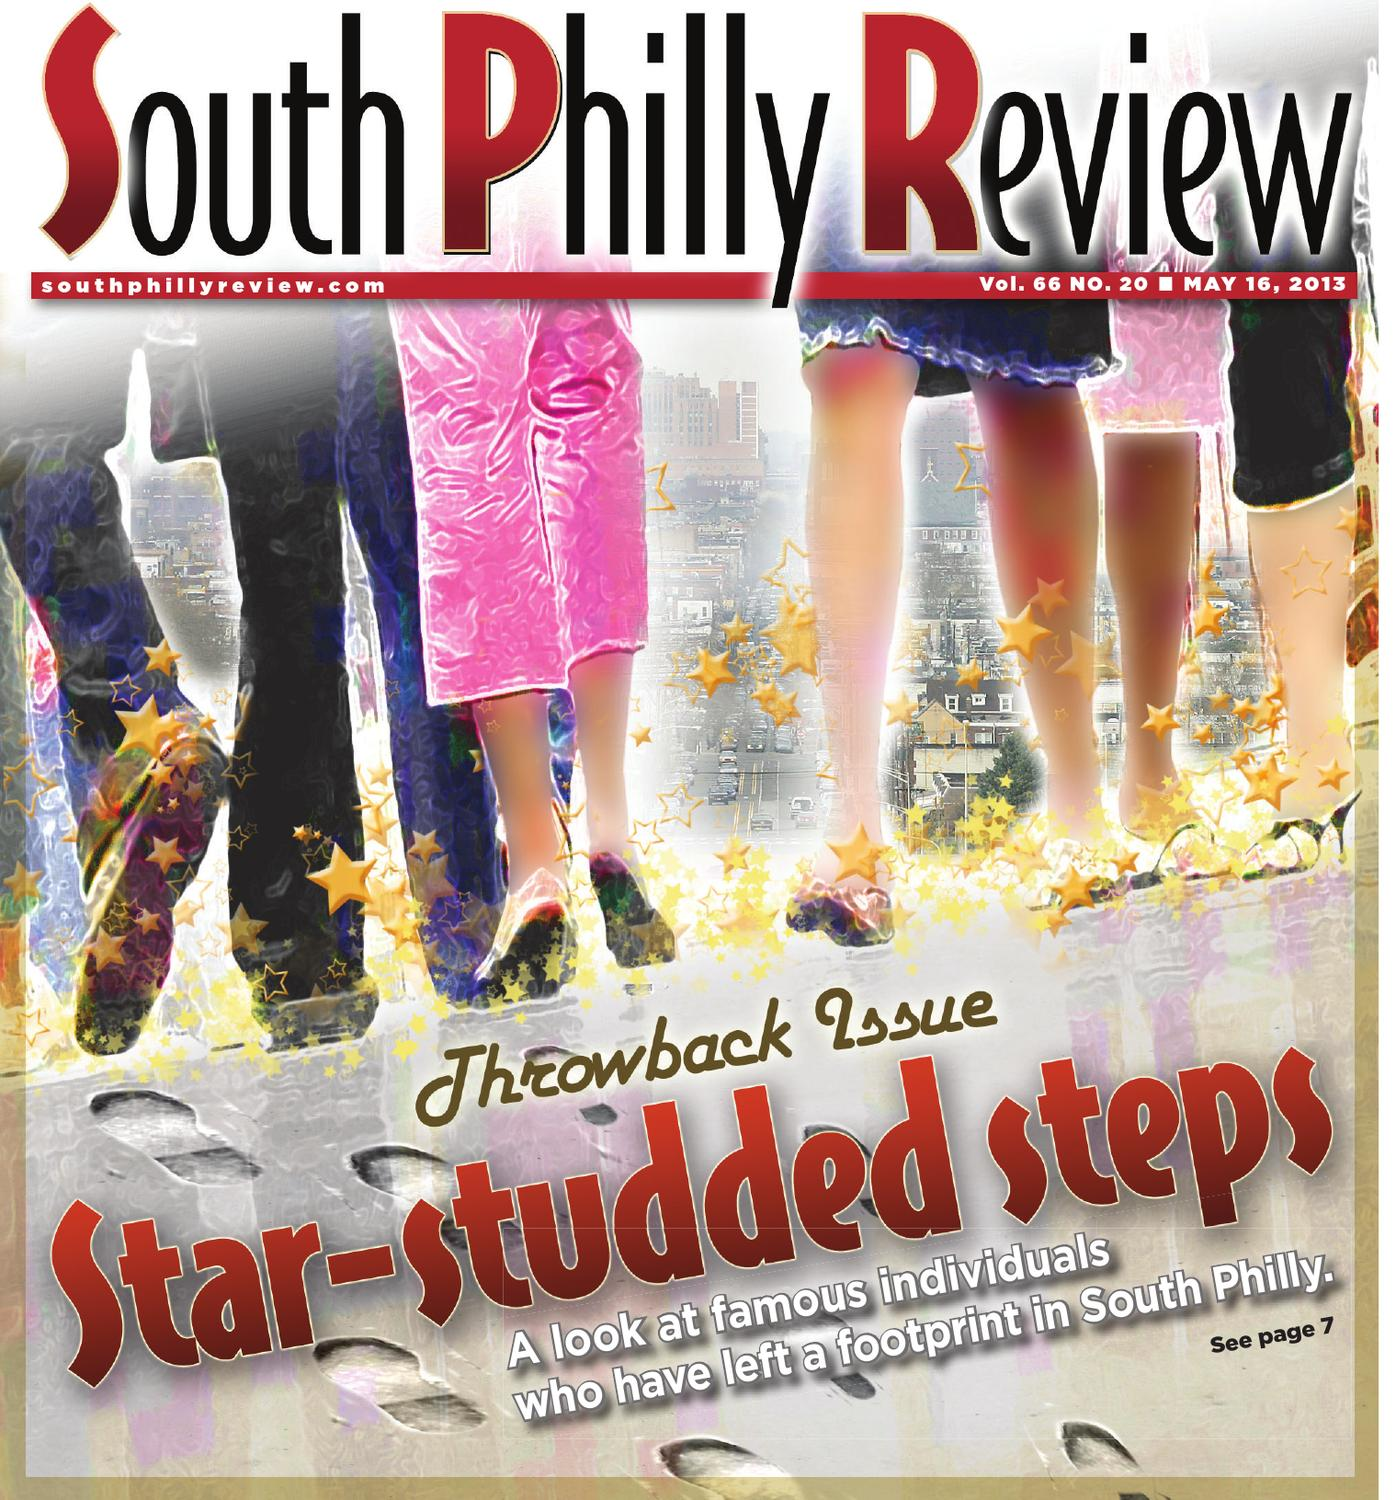 South Philly Review 5 16 2013 By South Philly Review Issuu